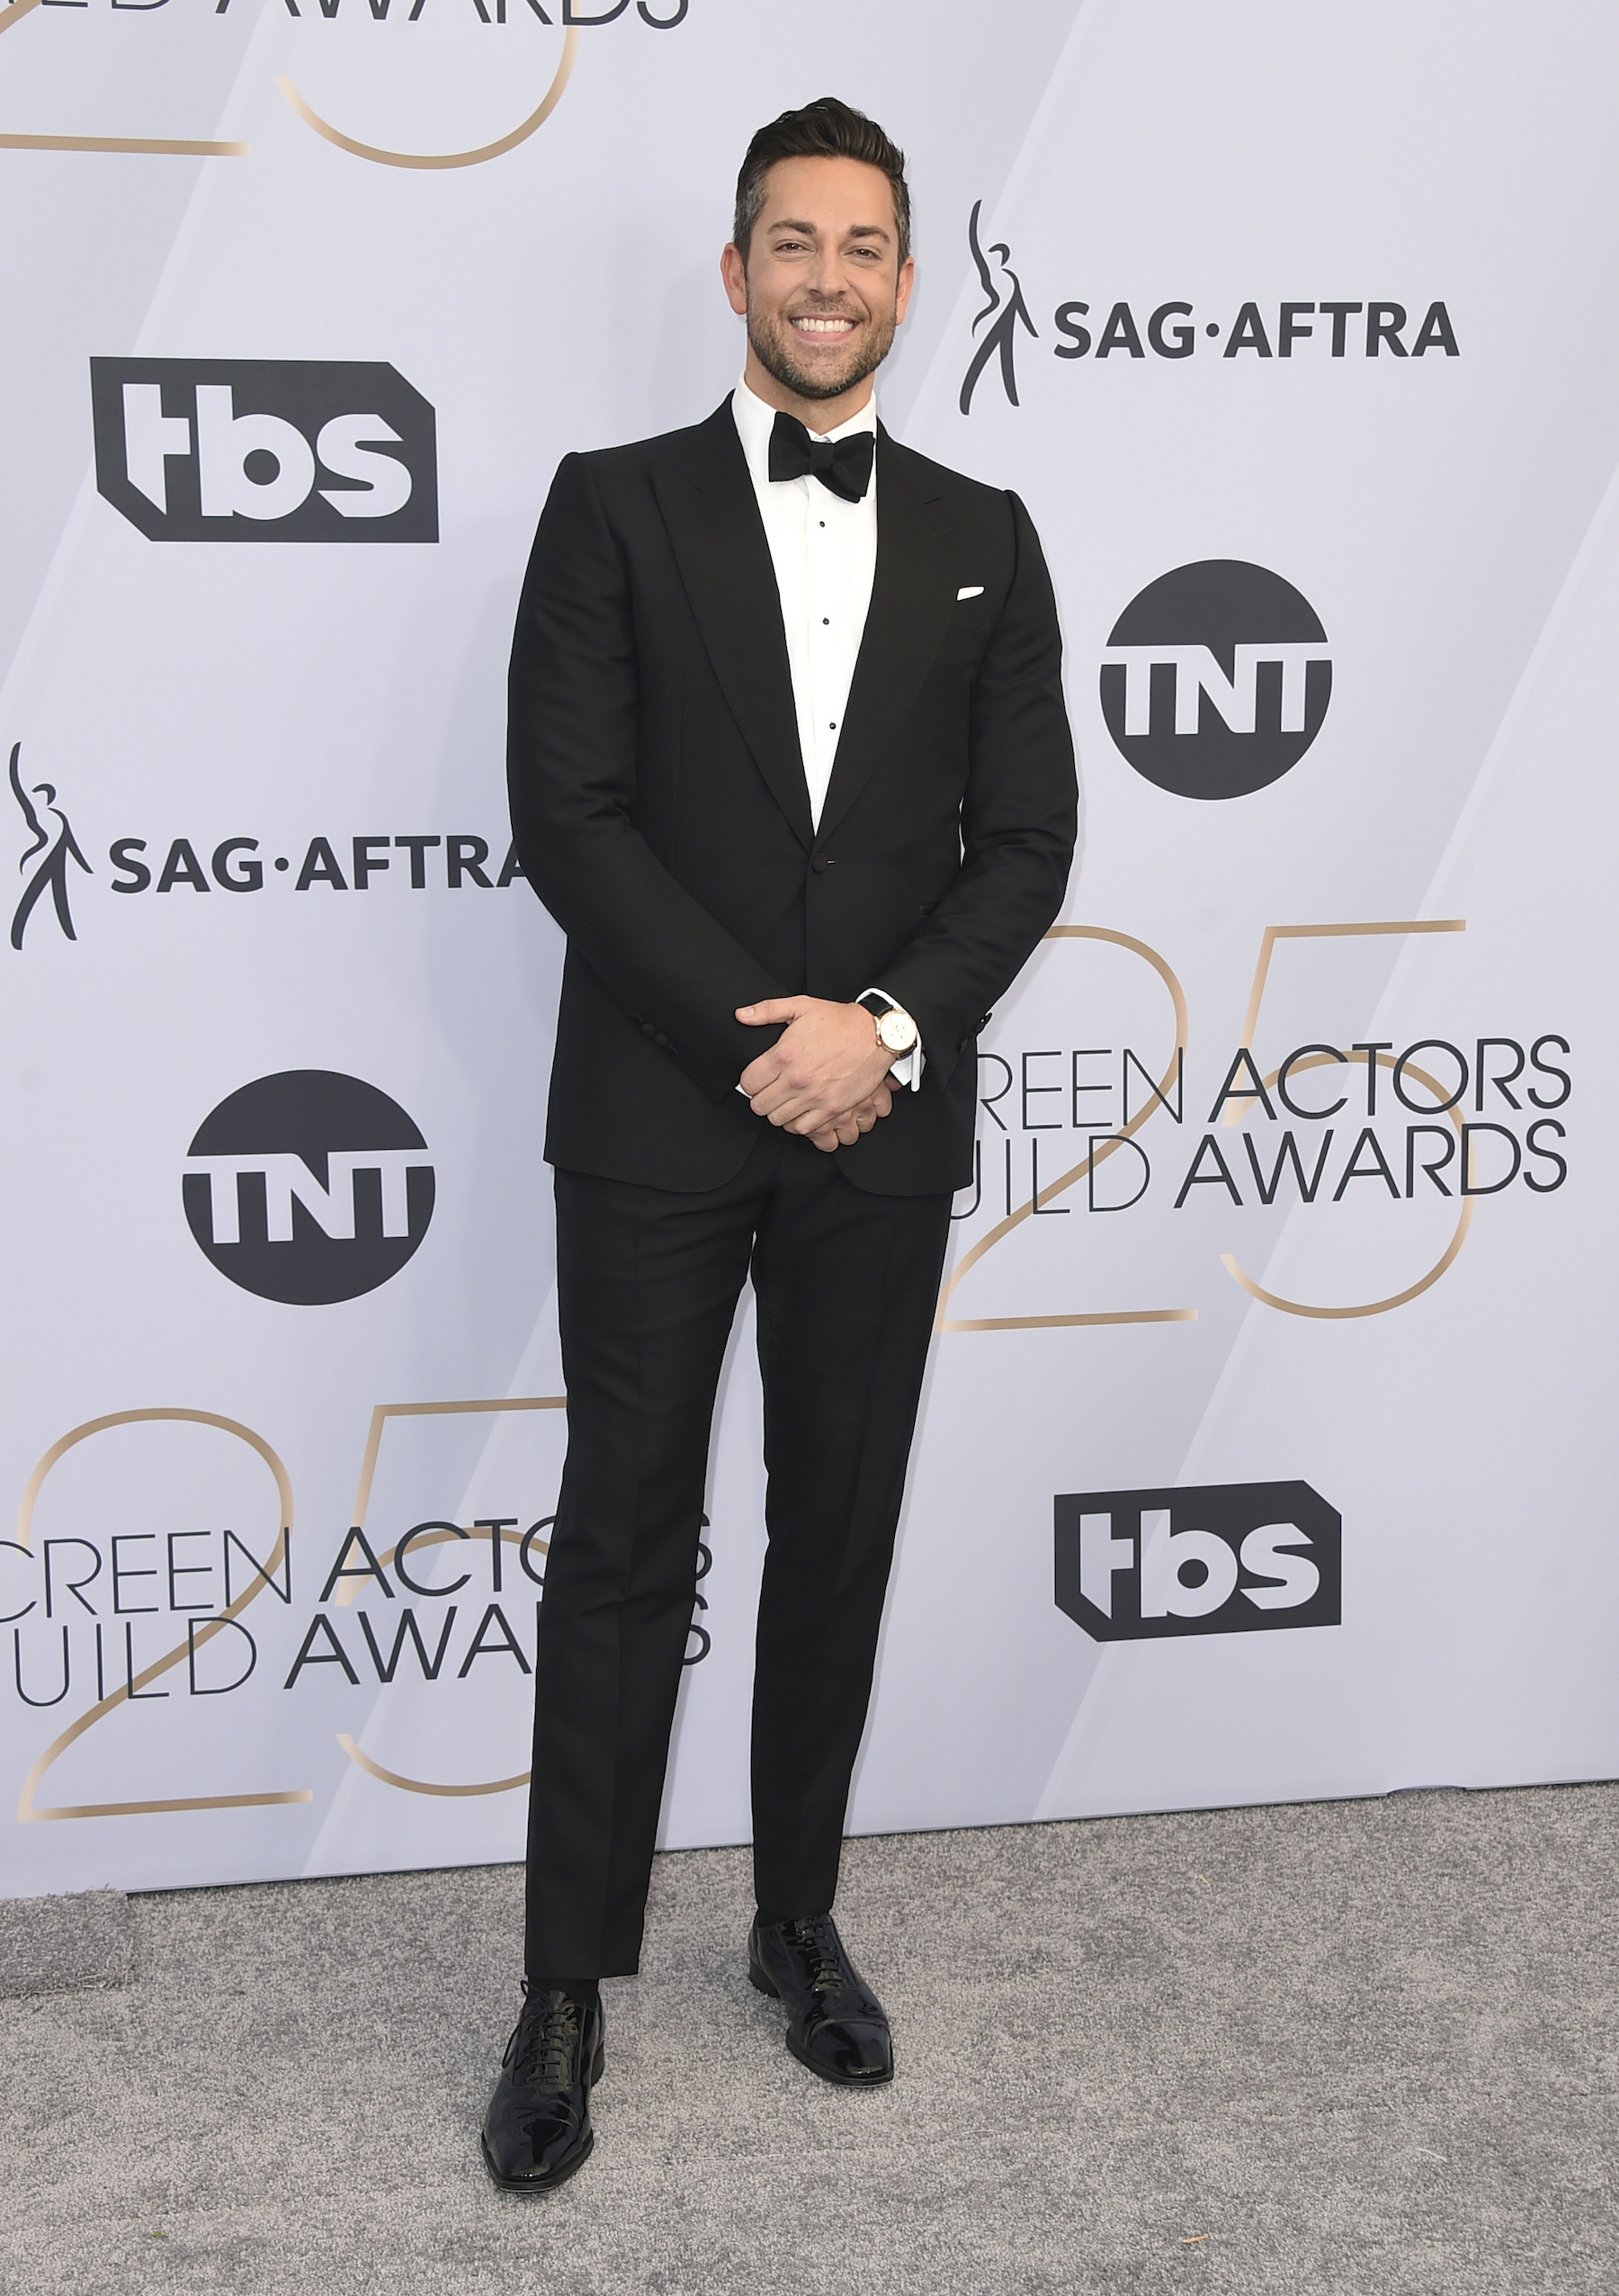 "<div class=""meta image-caption""><div class=""origin-logo origin-image ap""><span>AP</span></div><span class=""caption-text"">Zachary Levi arrives at the 25th annual Screen Actors Guild Awards at the Shrine Auditorium & Expo Hall on Sunday, Jan. 27, 2019, in Los Angeles. (Jordan Strauss/Invision/AP)</span></div>"